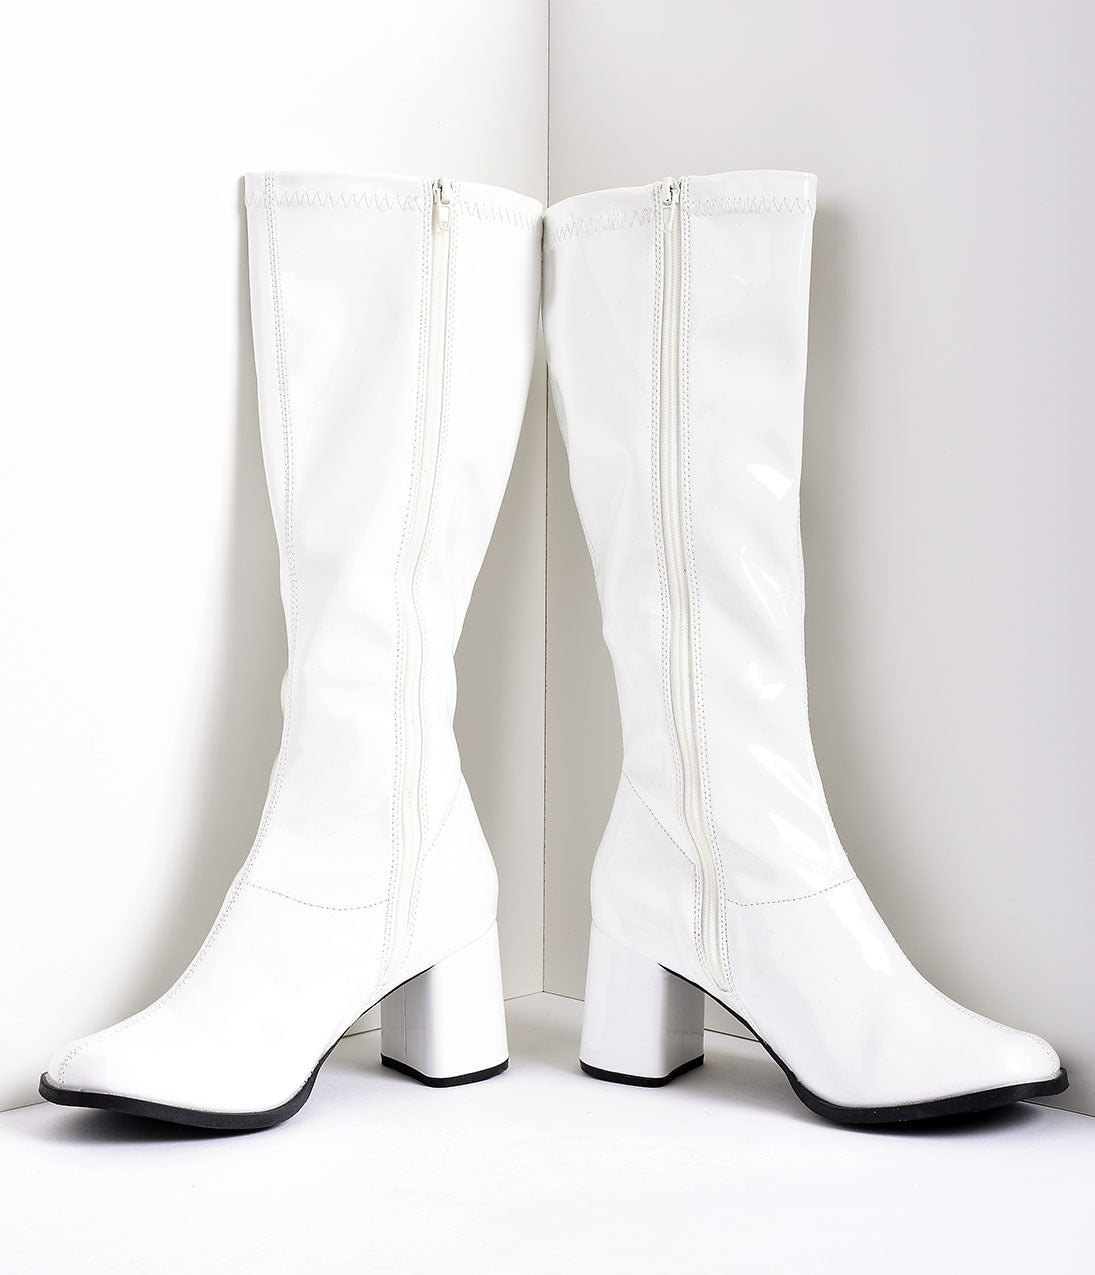 Vintage Boots, Retro Boots White Stretch Patent Knee High Go Go Boots $58.00 AT vintagedancer.com